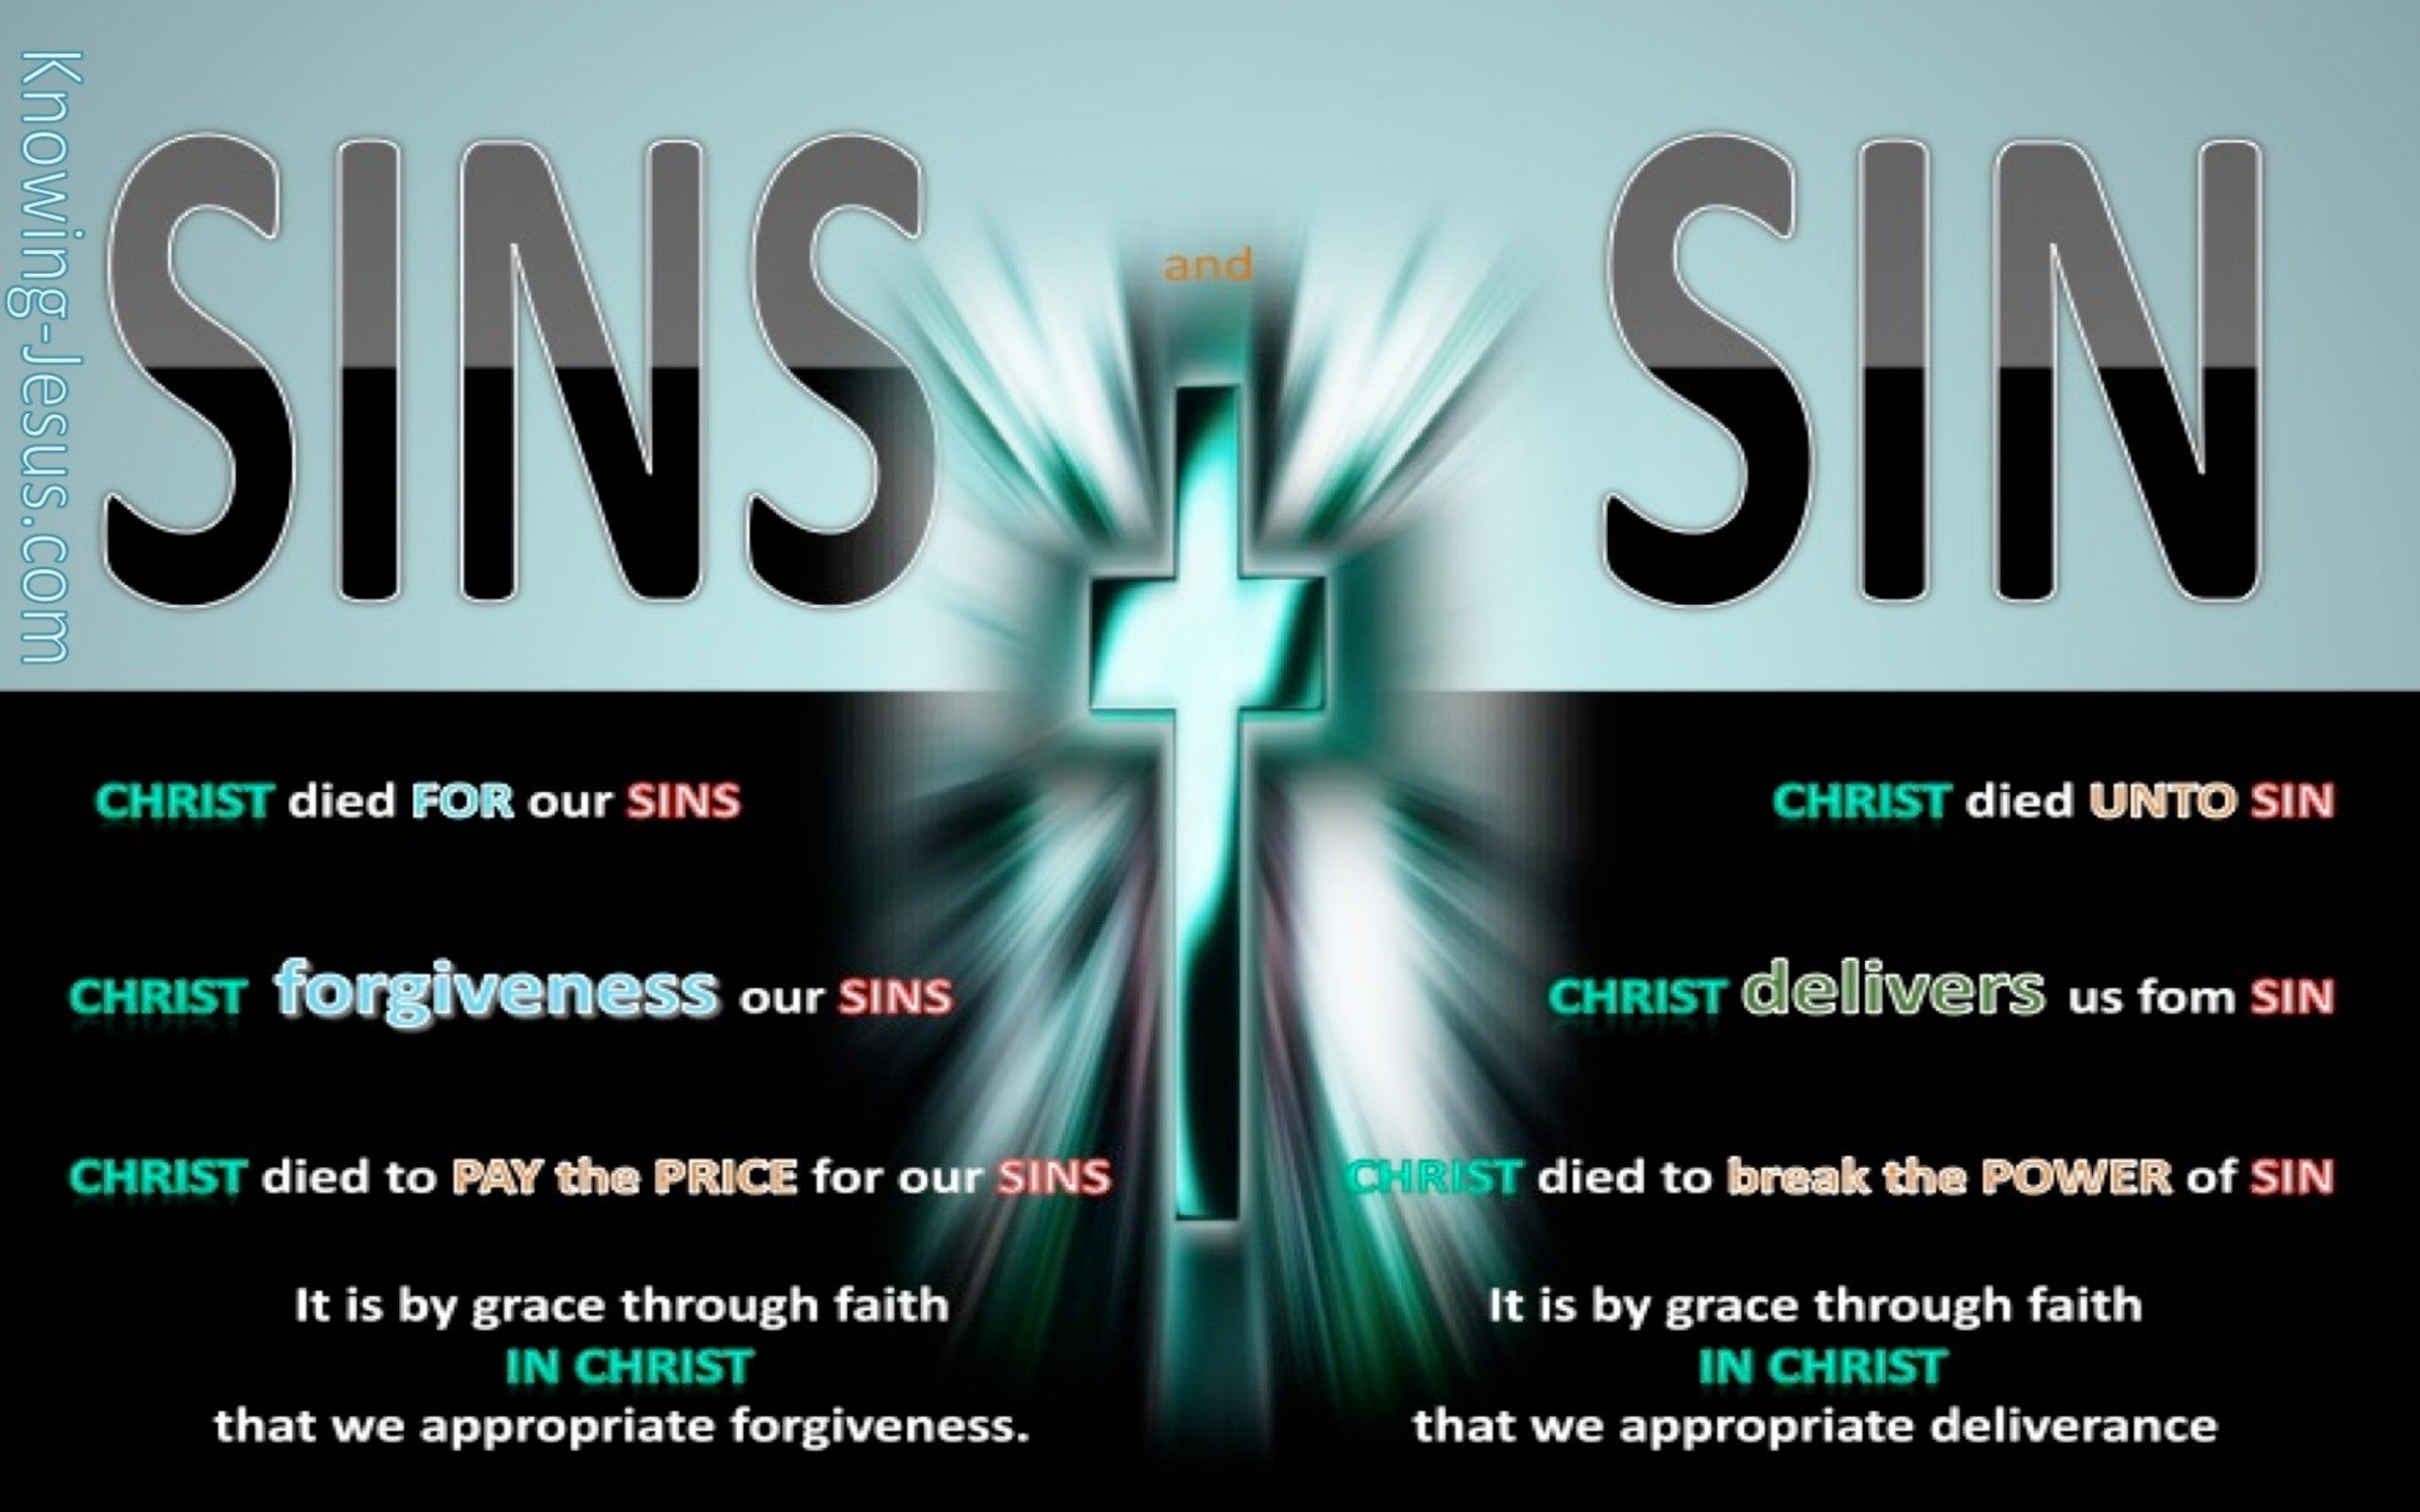 SALVATION - Sins Verses Sin (aqua)